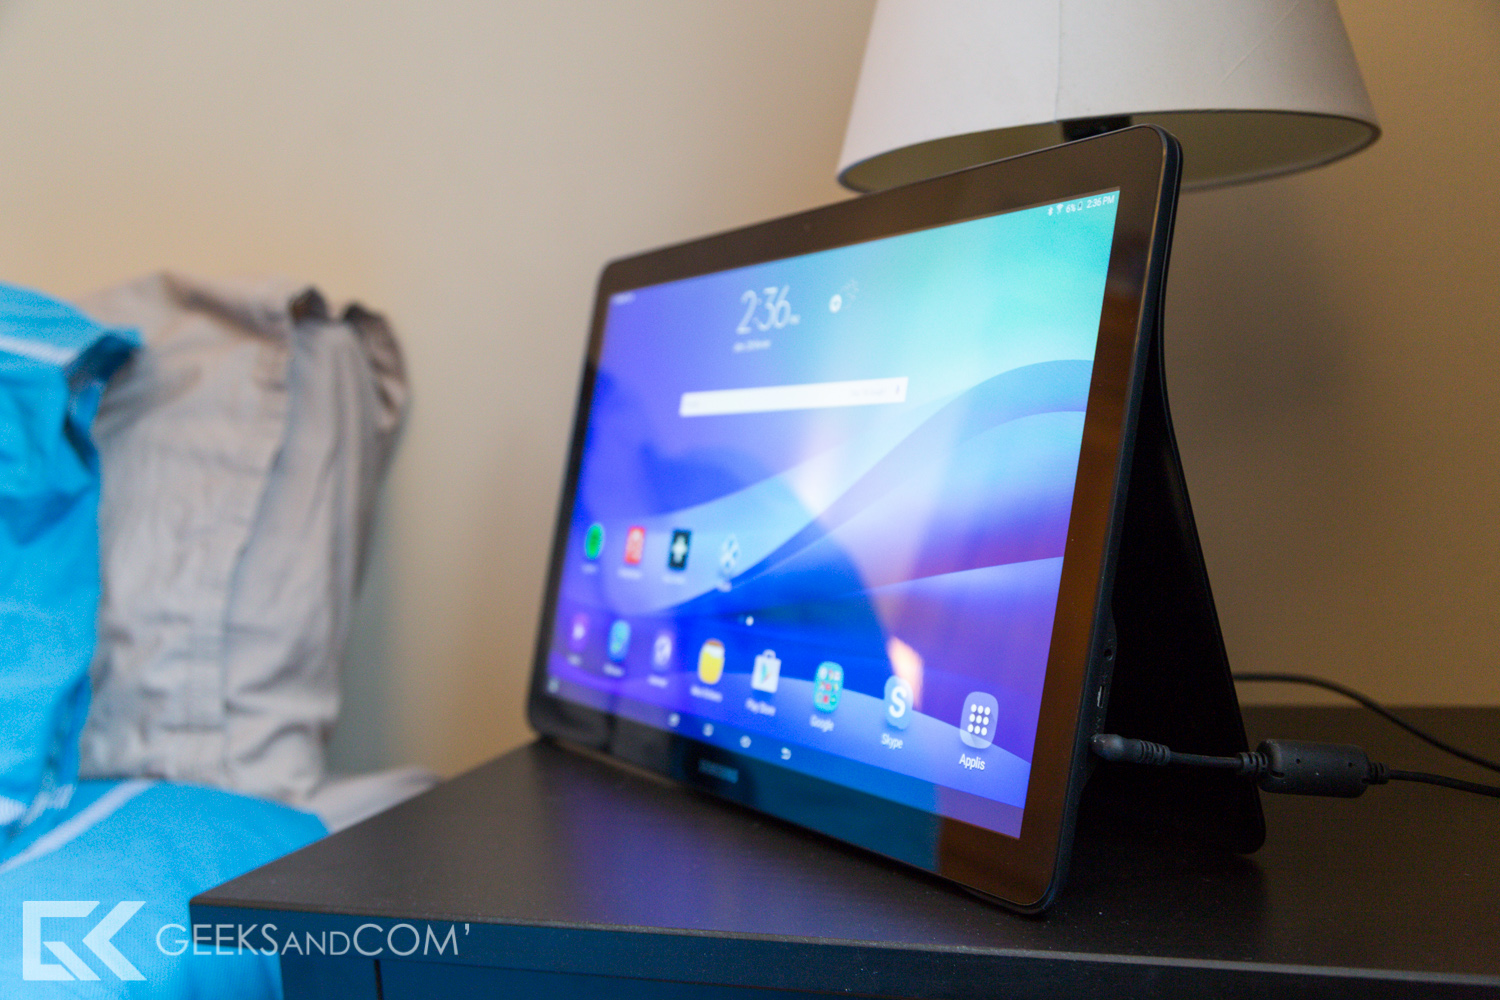 Samsung Galaxy View - Tablette Android - Test Geeks and Com -4